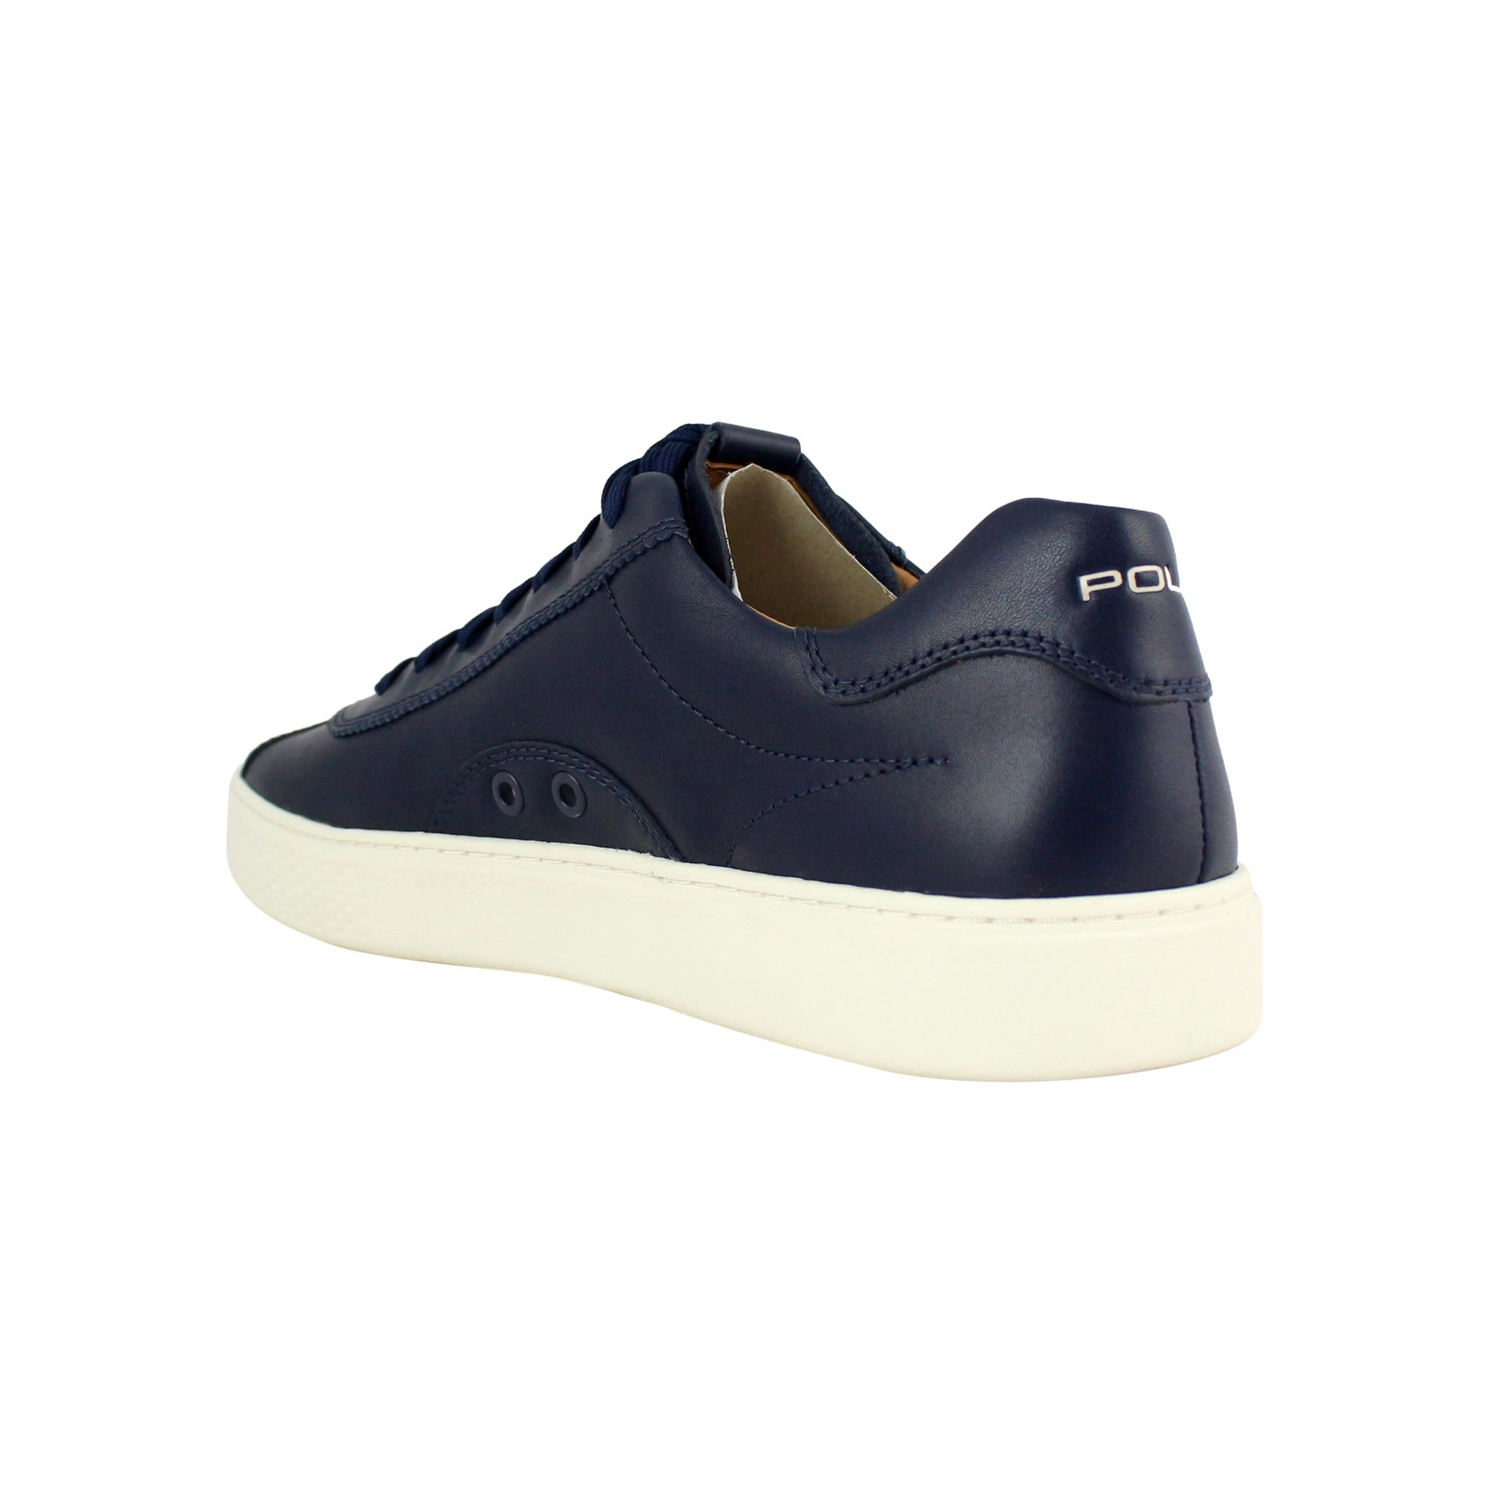 court 100 leather sneaker \u003e Up to 62